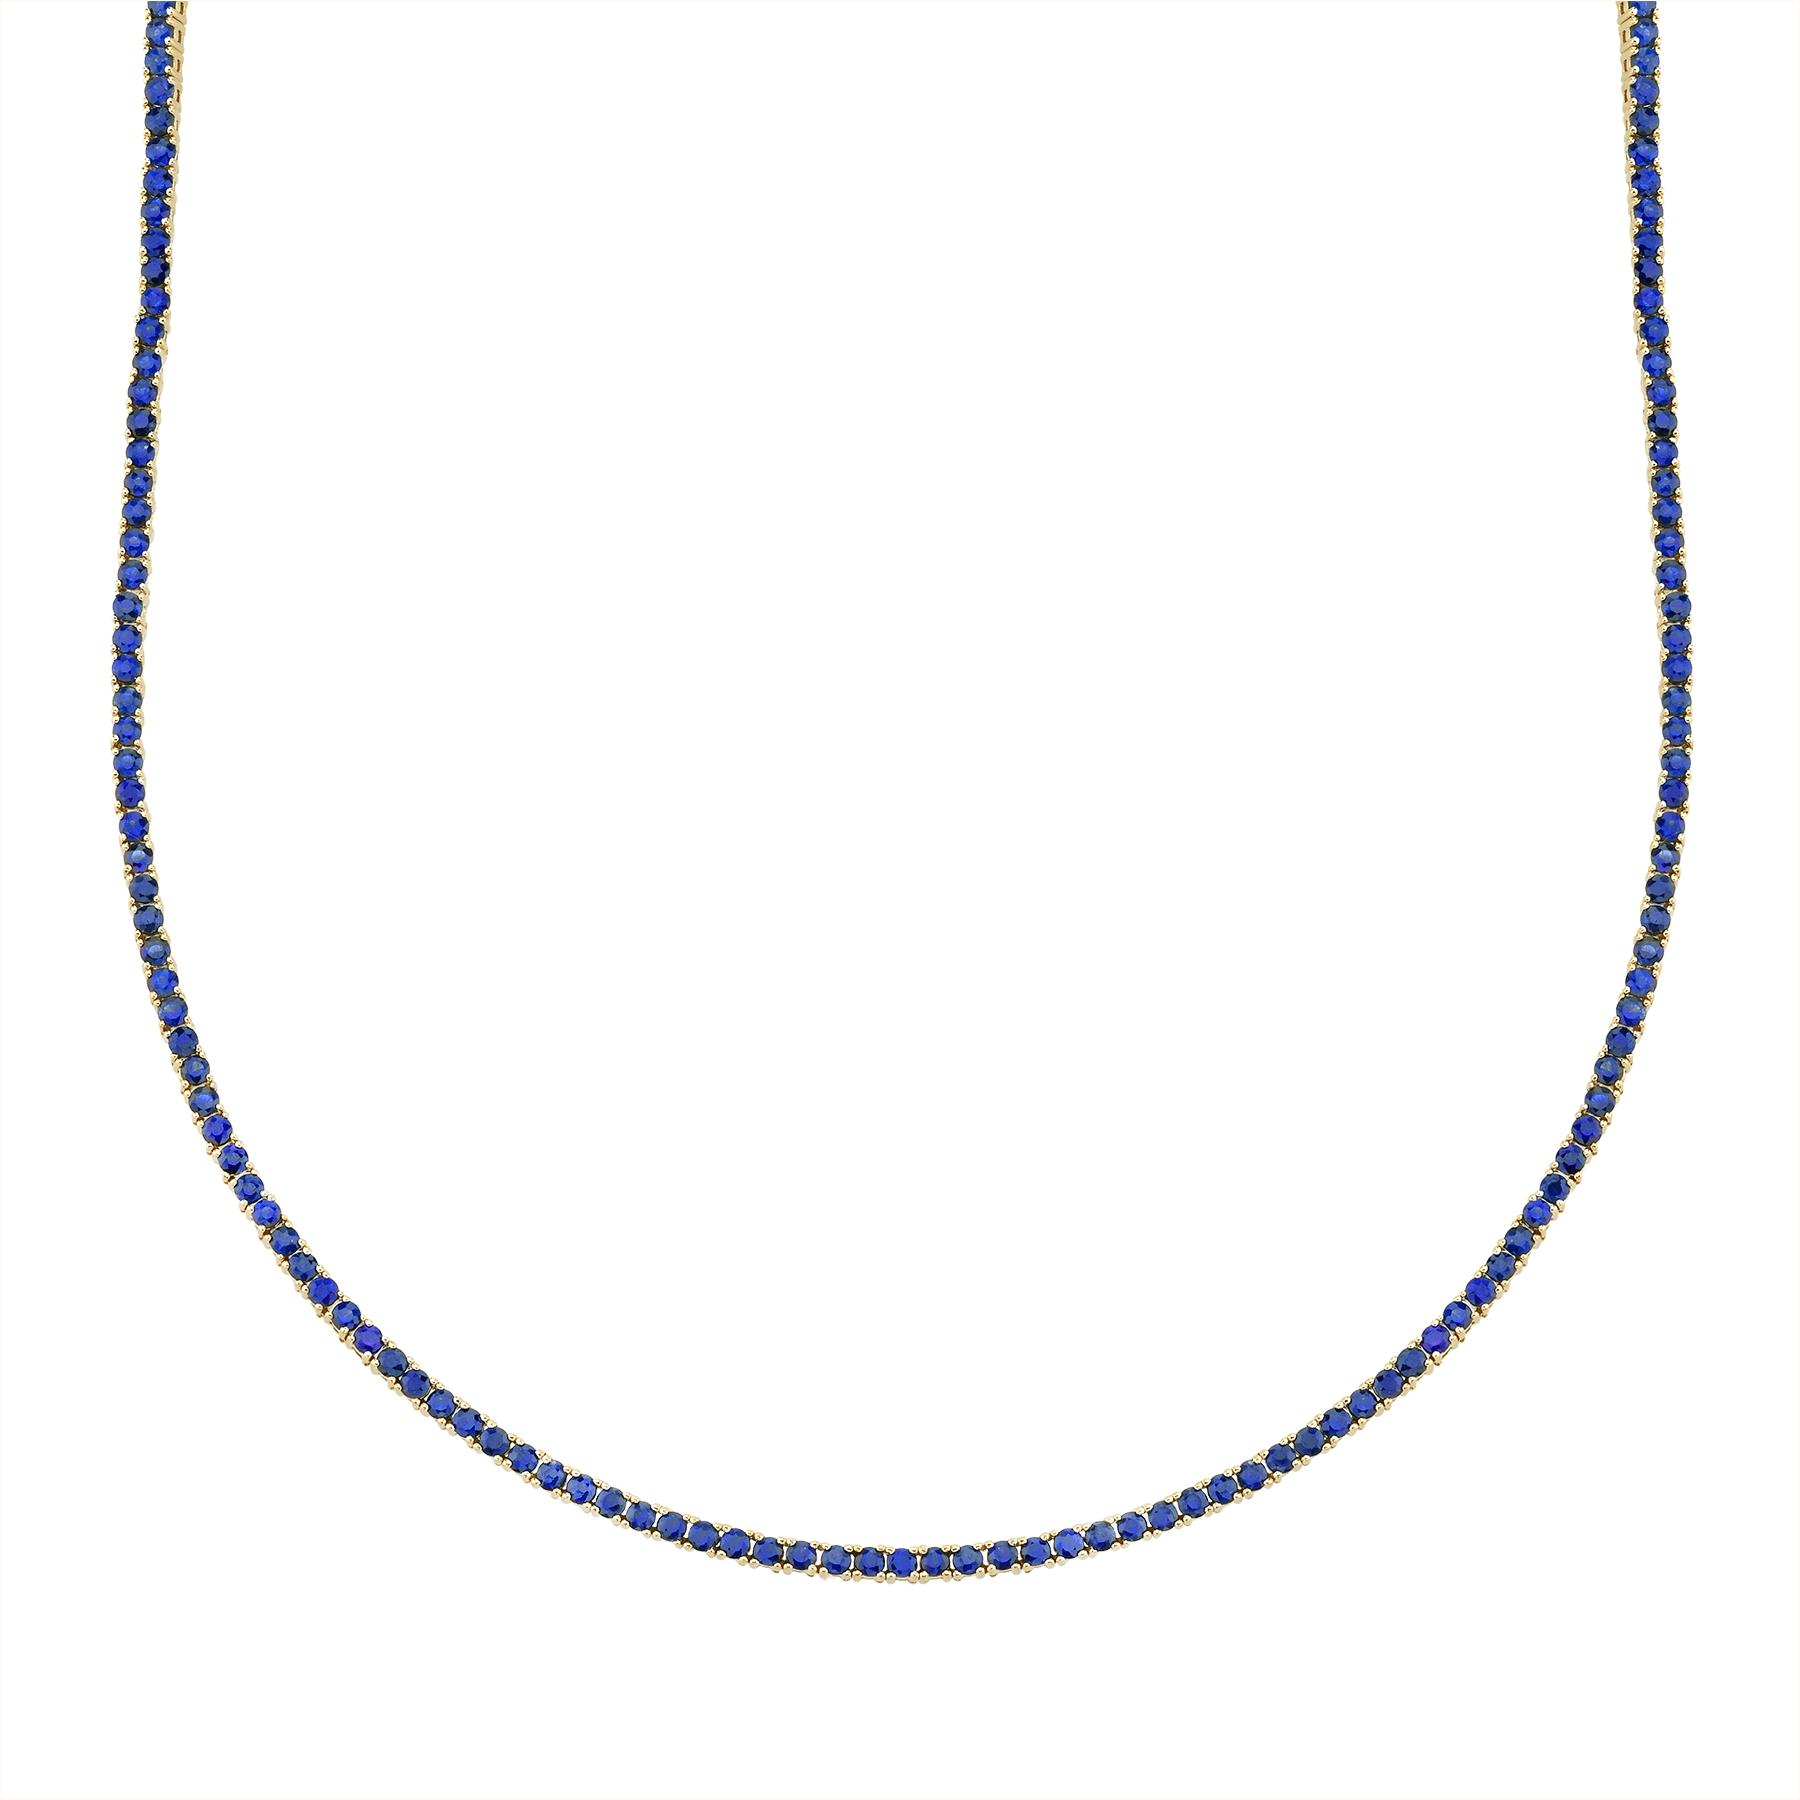 PERFECT BLUE SAPPHIRE COLLAR TENNIS NECKLACE